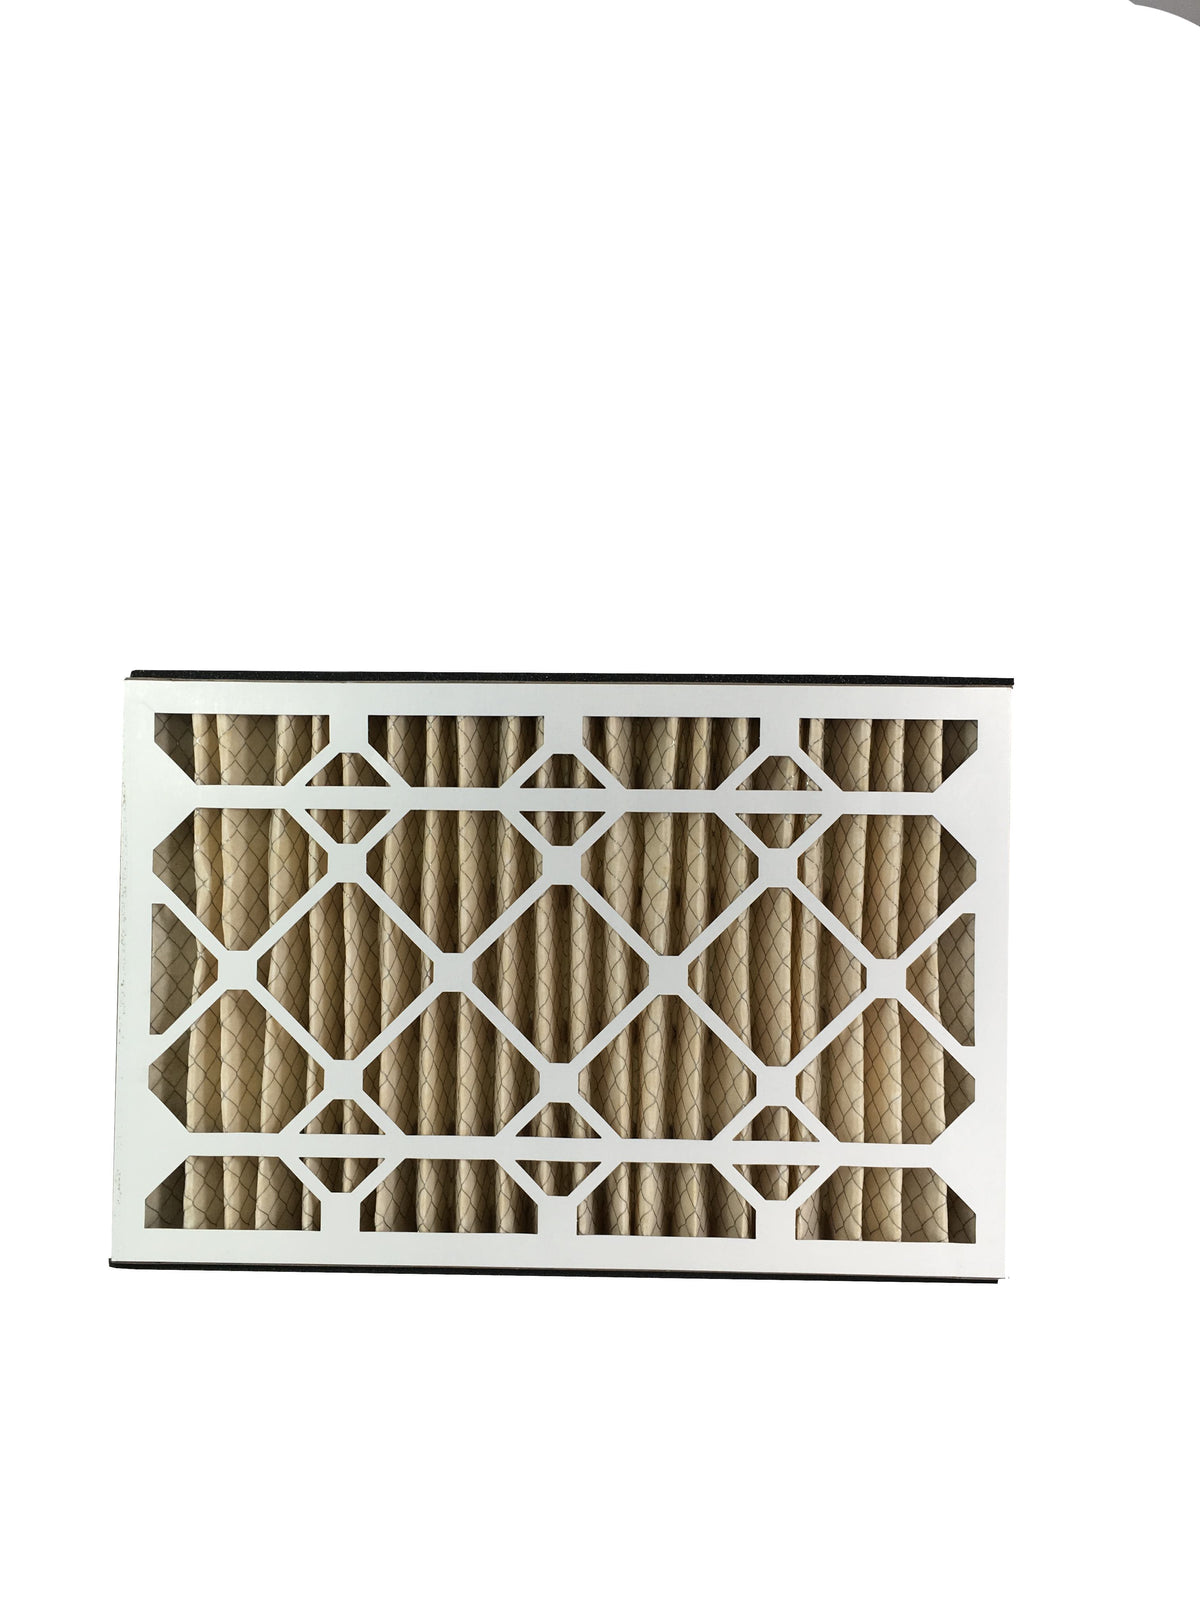 Ultravation 91-007 16x25x3 MERV 11 Replacement for Furnace Filter - 1 Pack